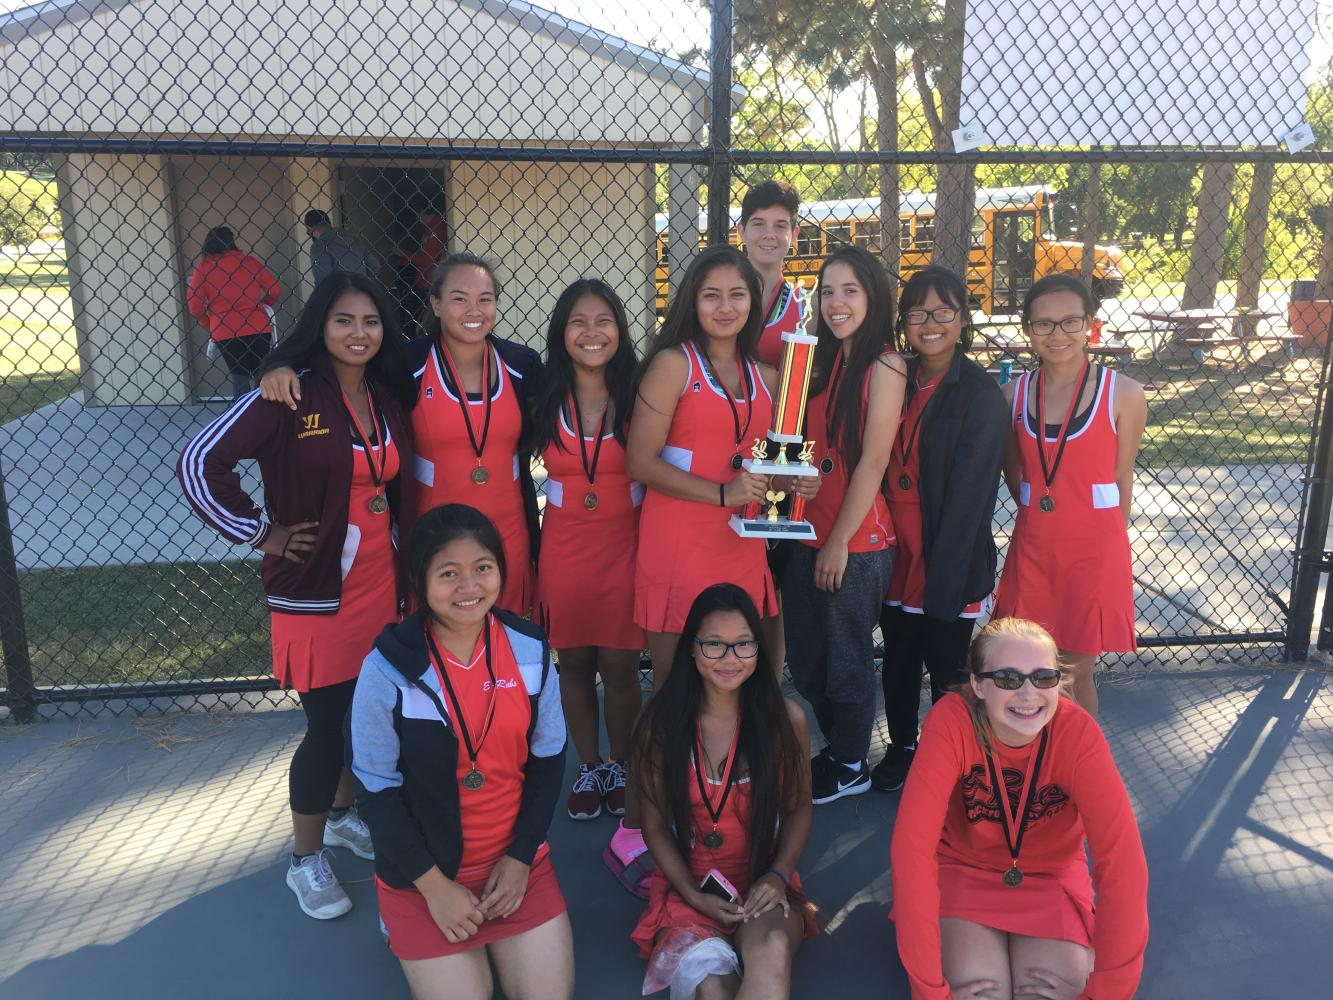 E-Rab ladies take first place at East Aurora tournament on September 30. All girls in the East tennis team took home a first or second place medal.